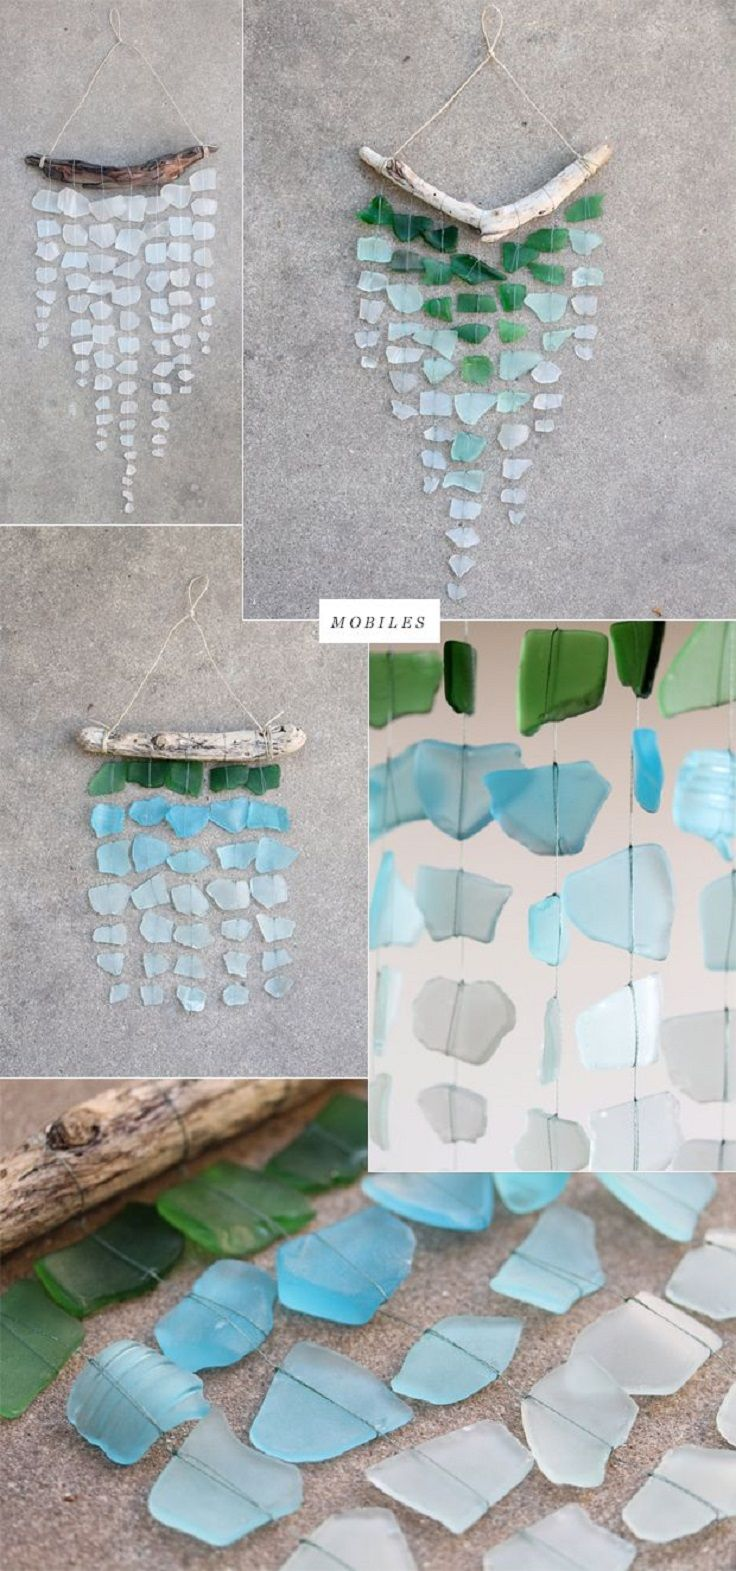 top 10 diy tropical decorations for your home upcycling projects and sea glass. Black Bedroom Furniture Sets. Home Design Ideas